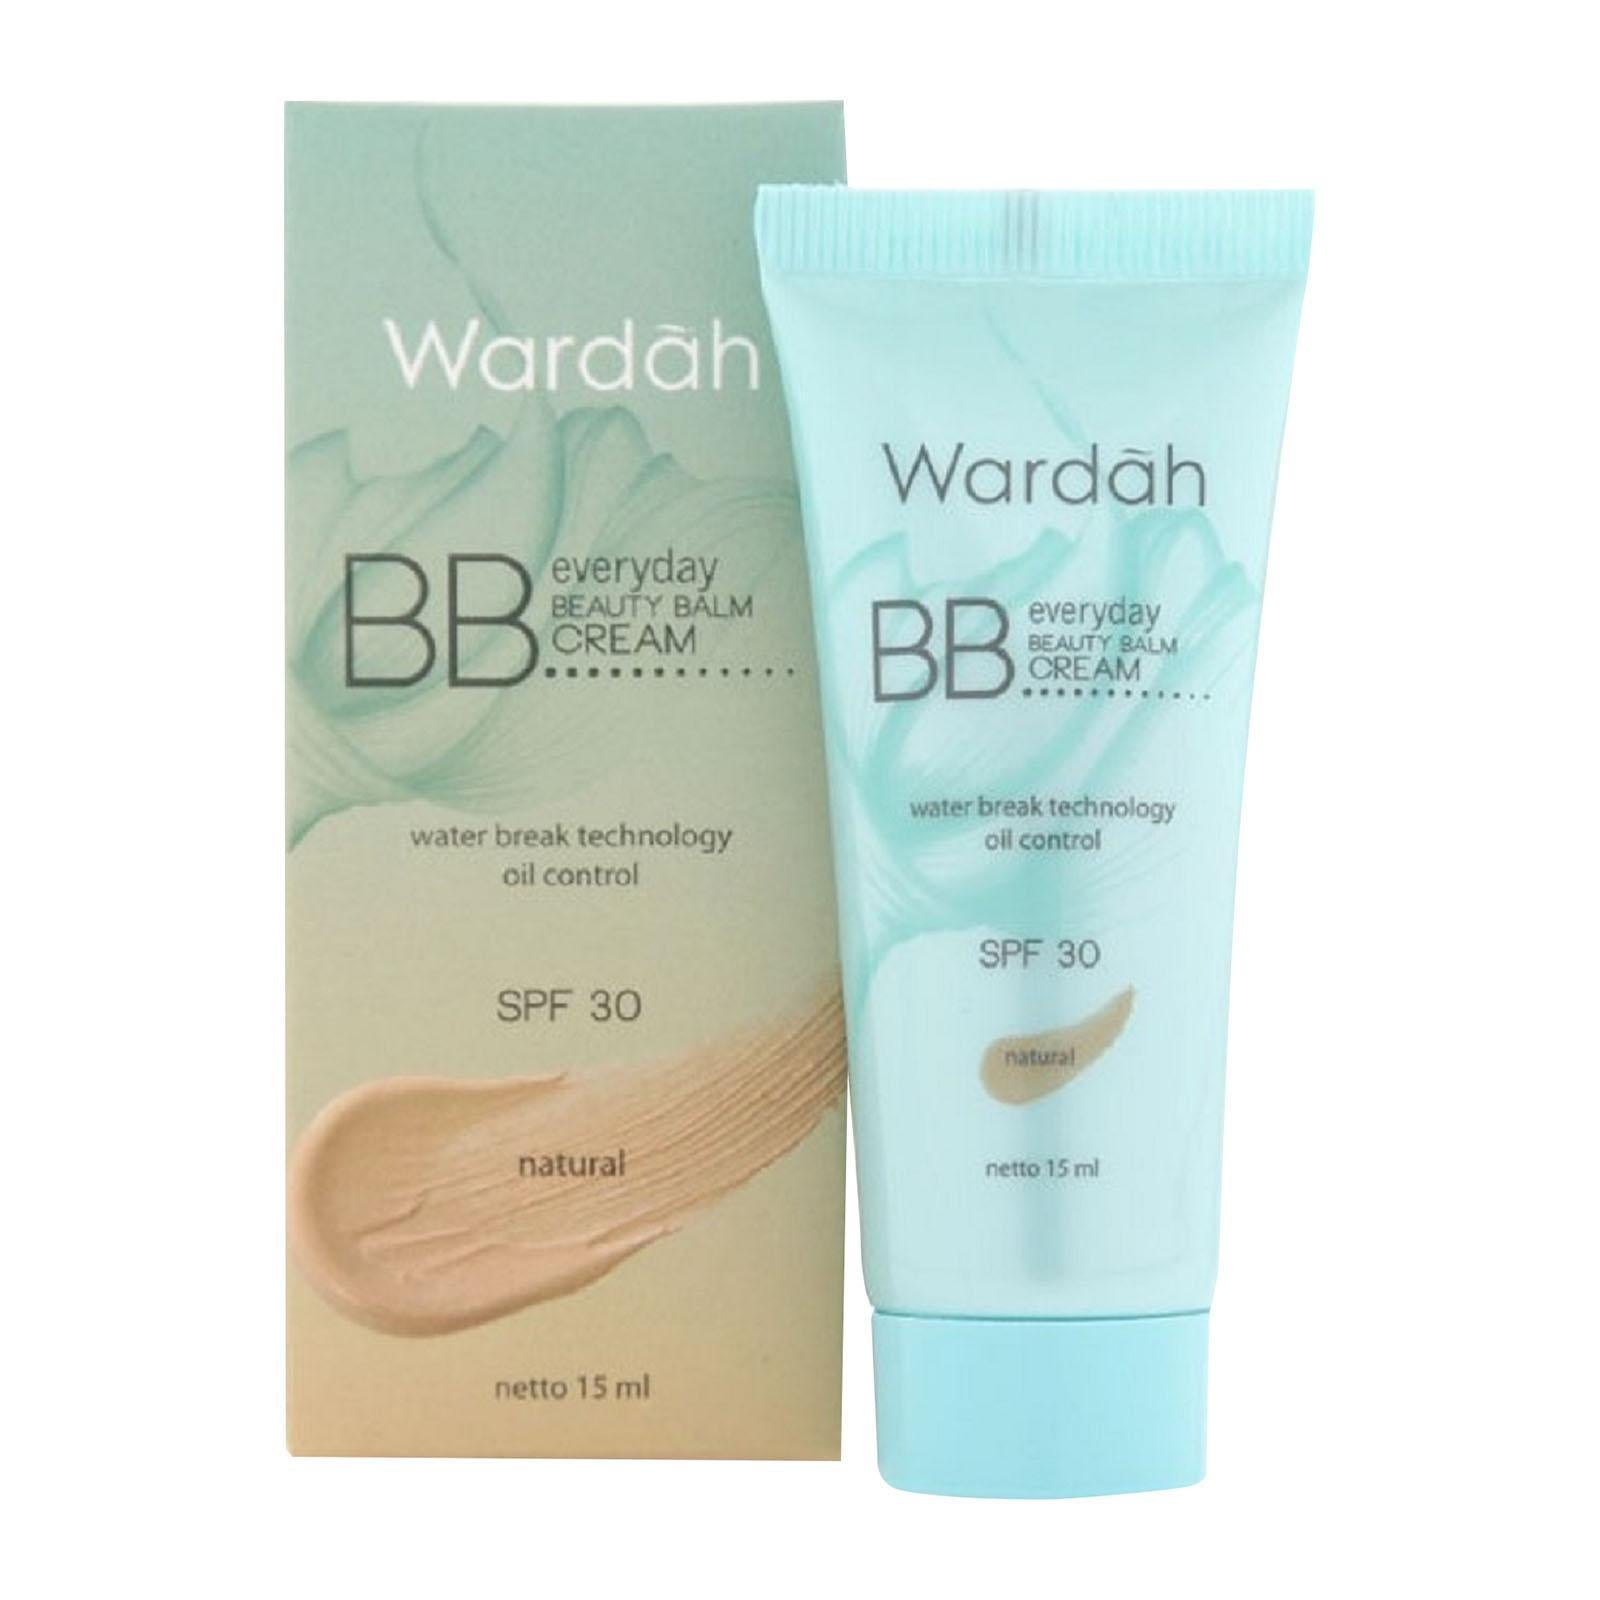 BB Cream Everyday Beauty Balm - Wardah (Oil Control)